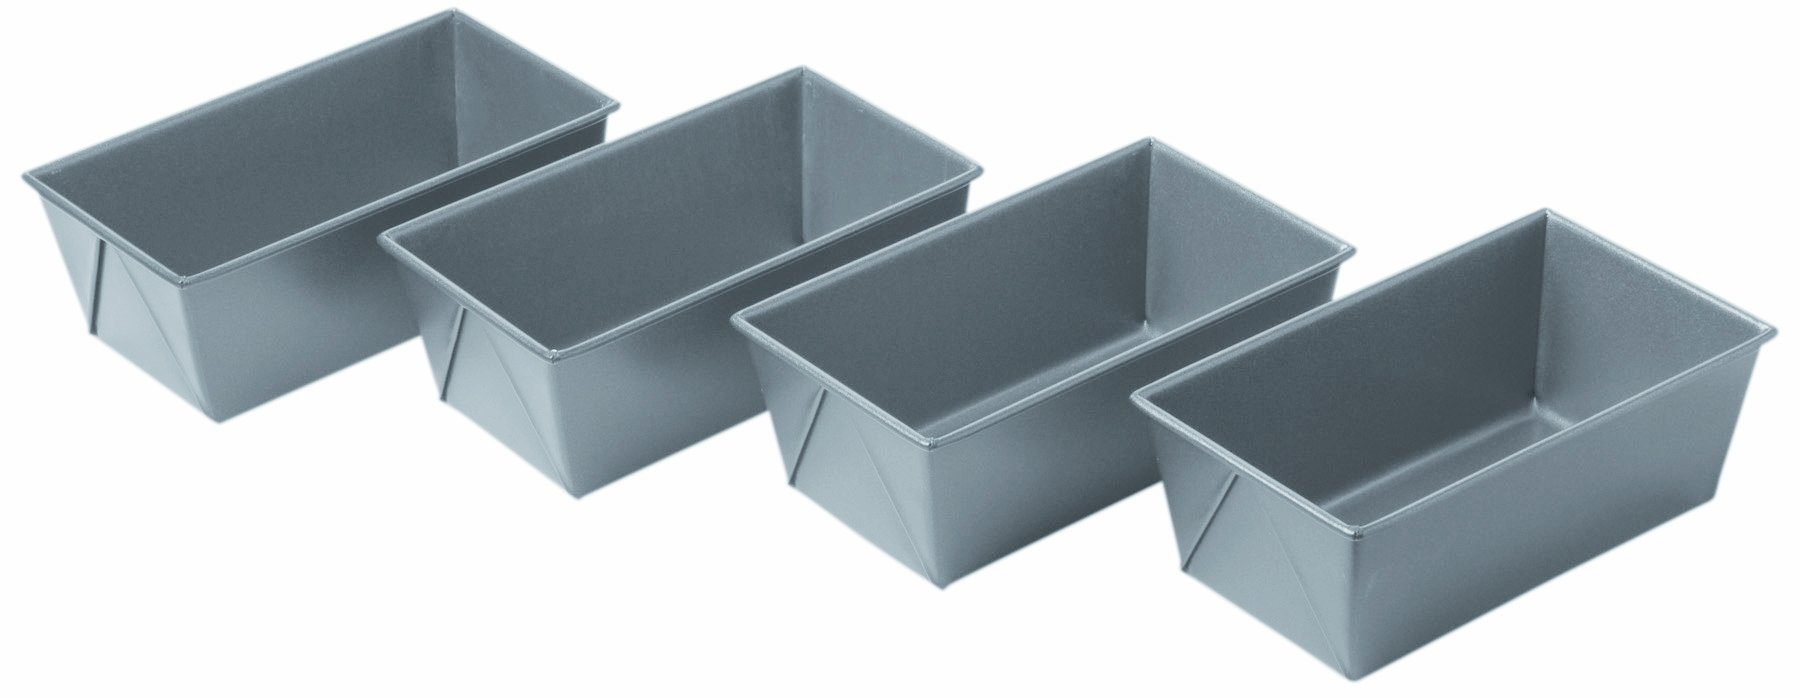 Chicago Metallic Commercial II Non-Stick Mini Loaf Pans, Set of 4 by Chicago Metallic